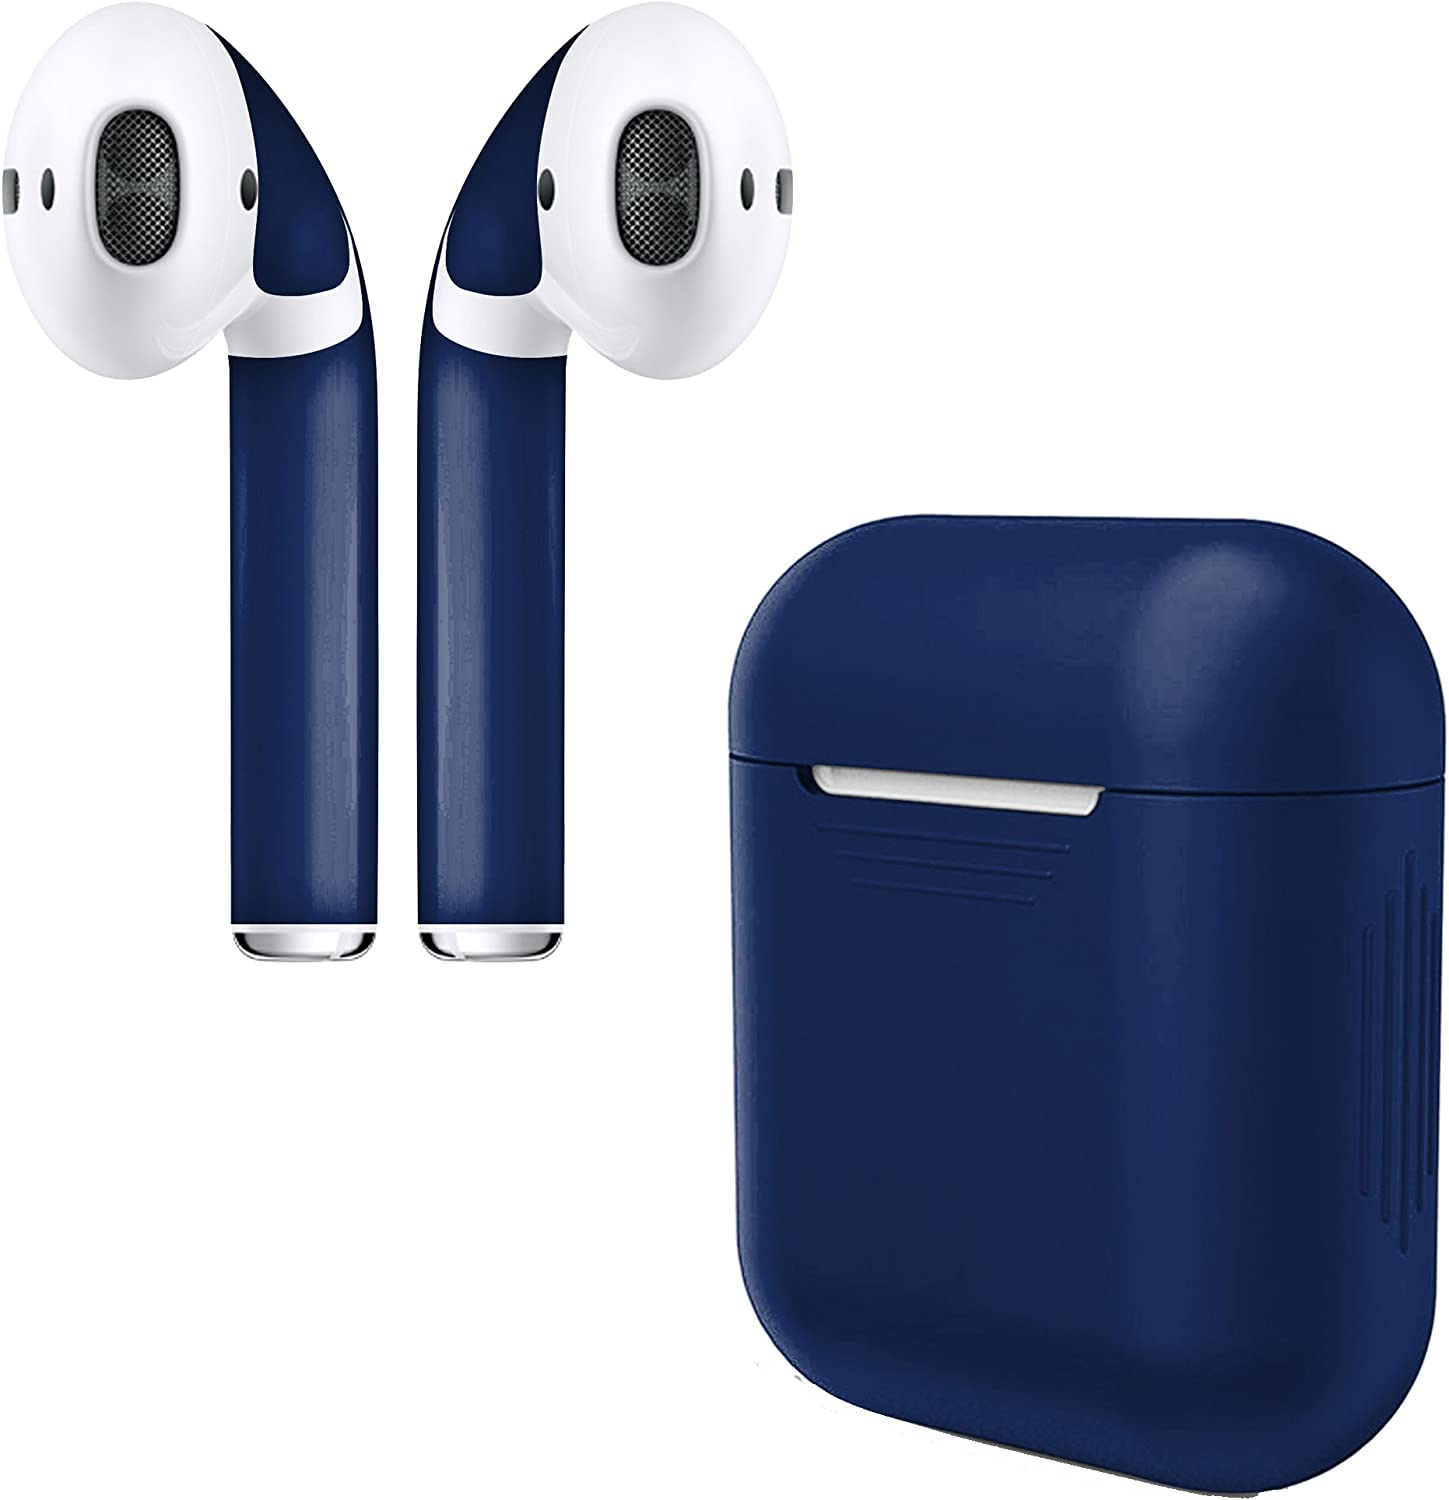 APSkins Silicone Case and Stylish Skins Compatible with Apple AirPod Accessories (Midnight Blue Case & Skin)